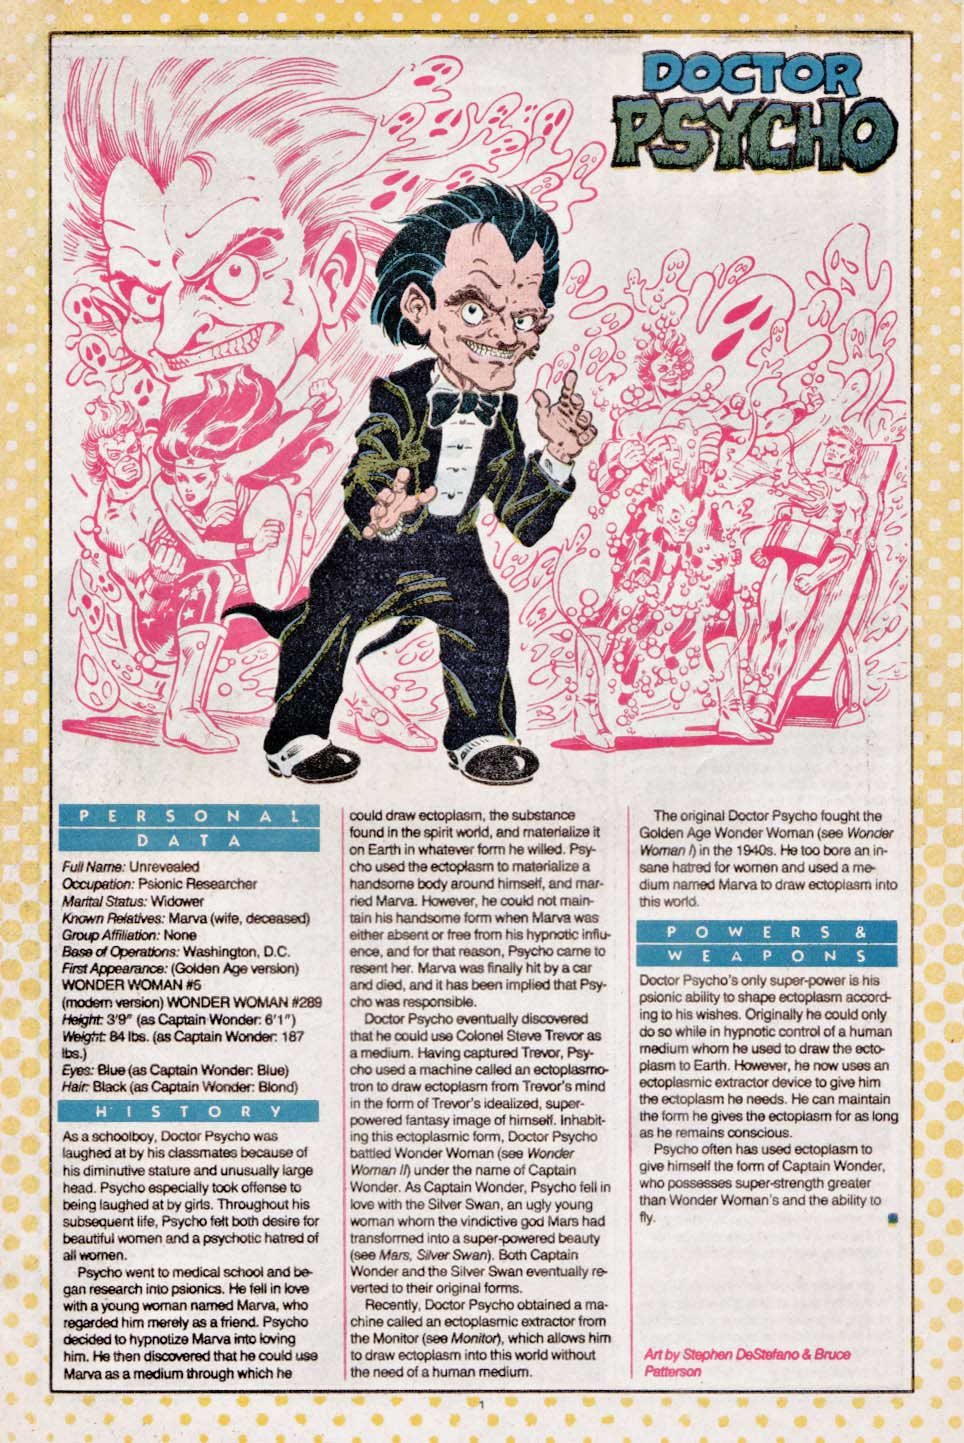 Doctor Psycho by Stephen DeStefano & Bruce Patterson - Who's Who: The Definitive Directory of the DC Universe #7